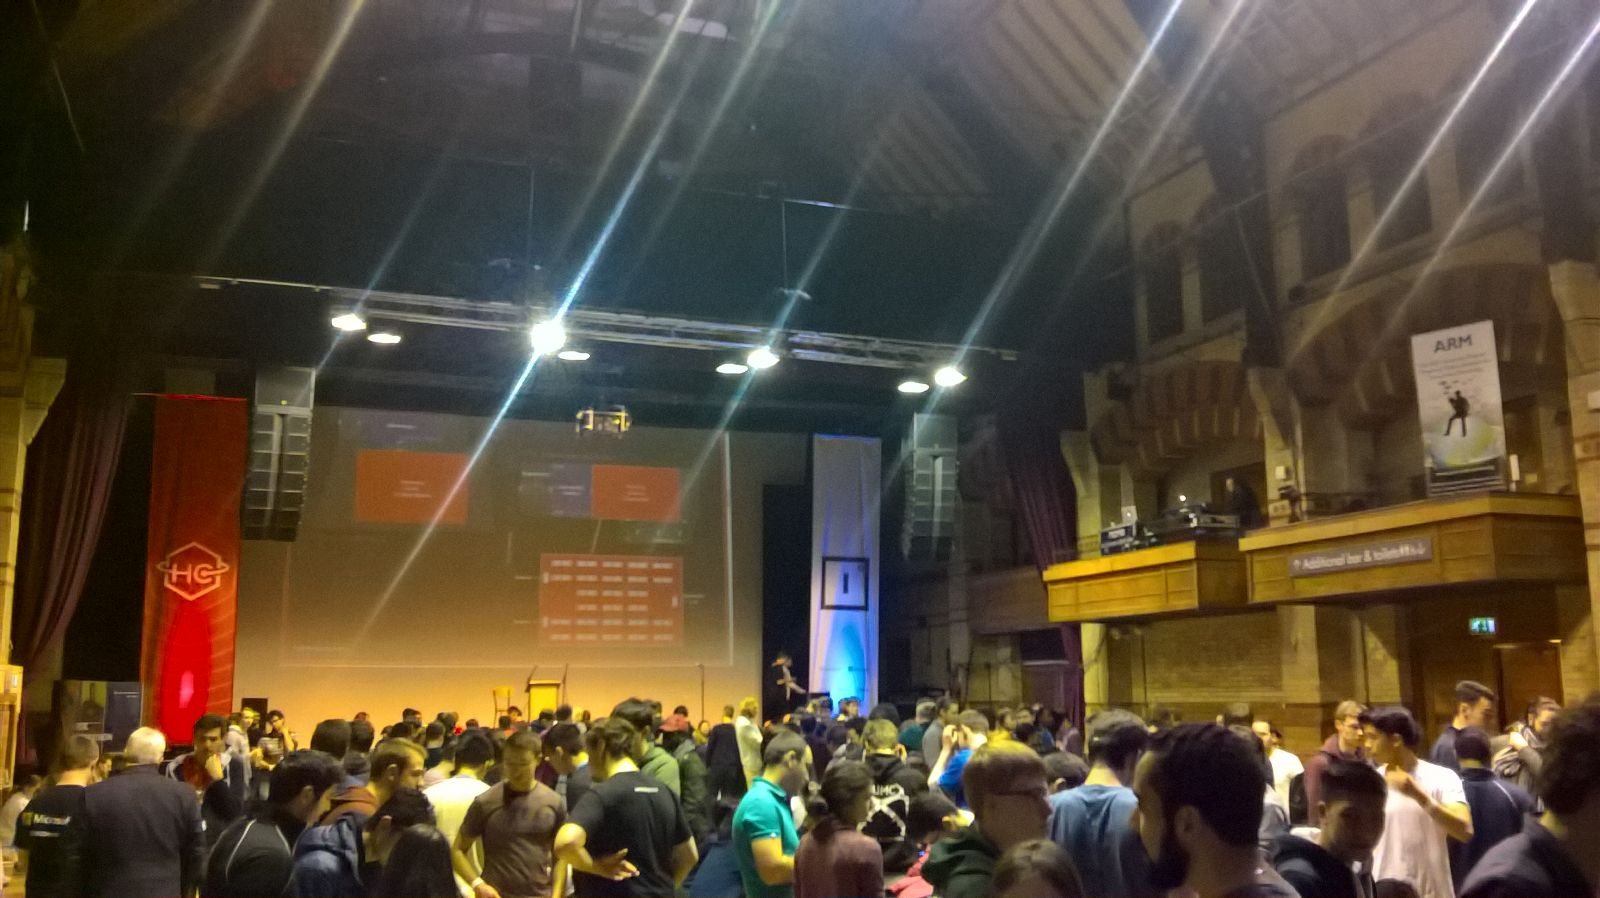 The attendees at HackCambridge (Courtesy: Major League Hacking)